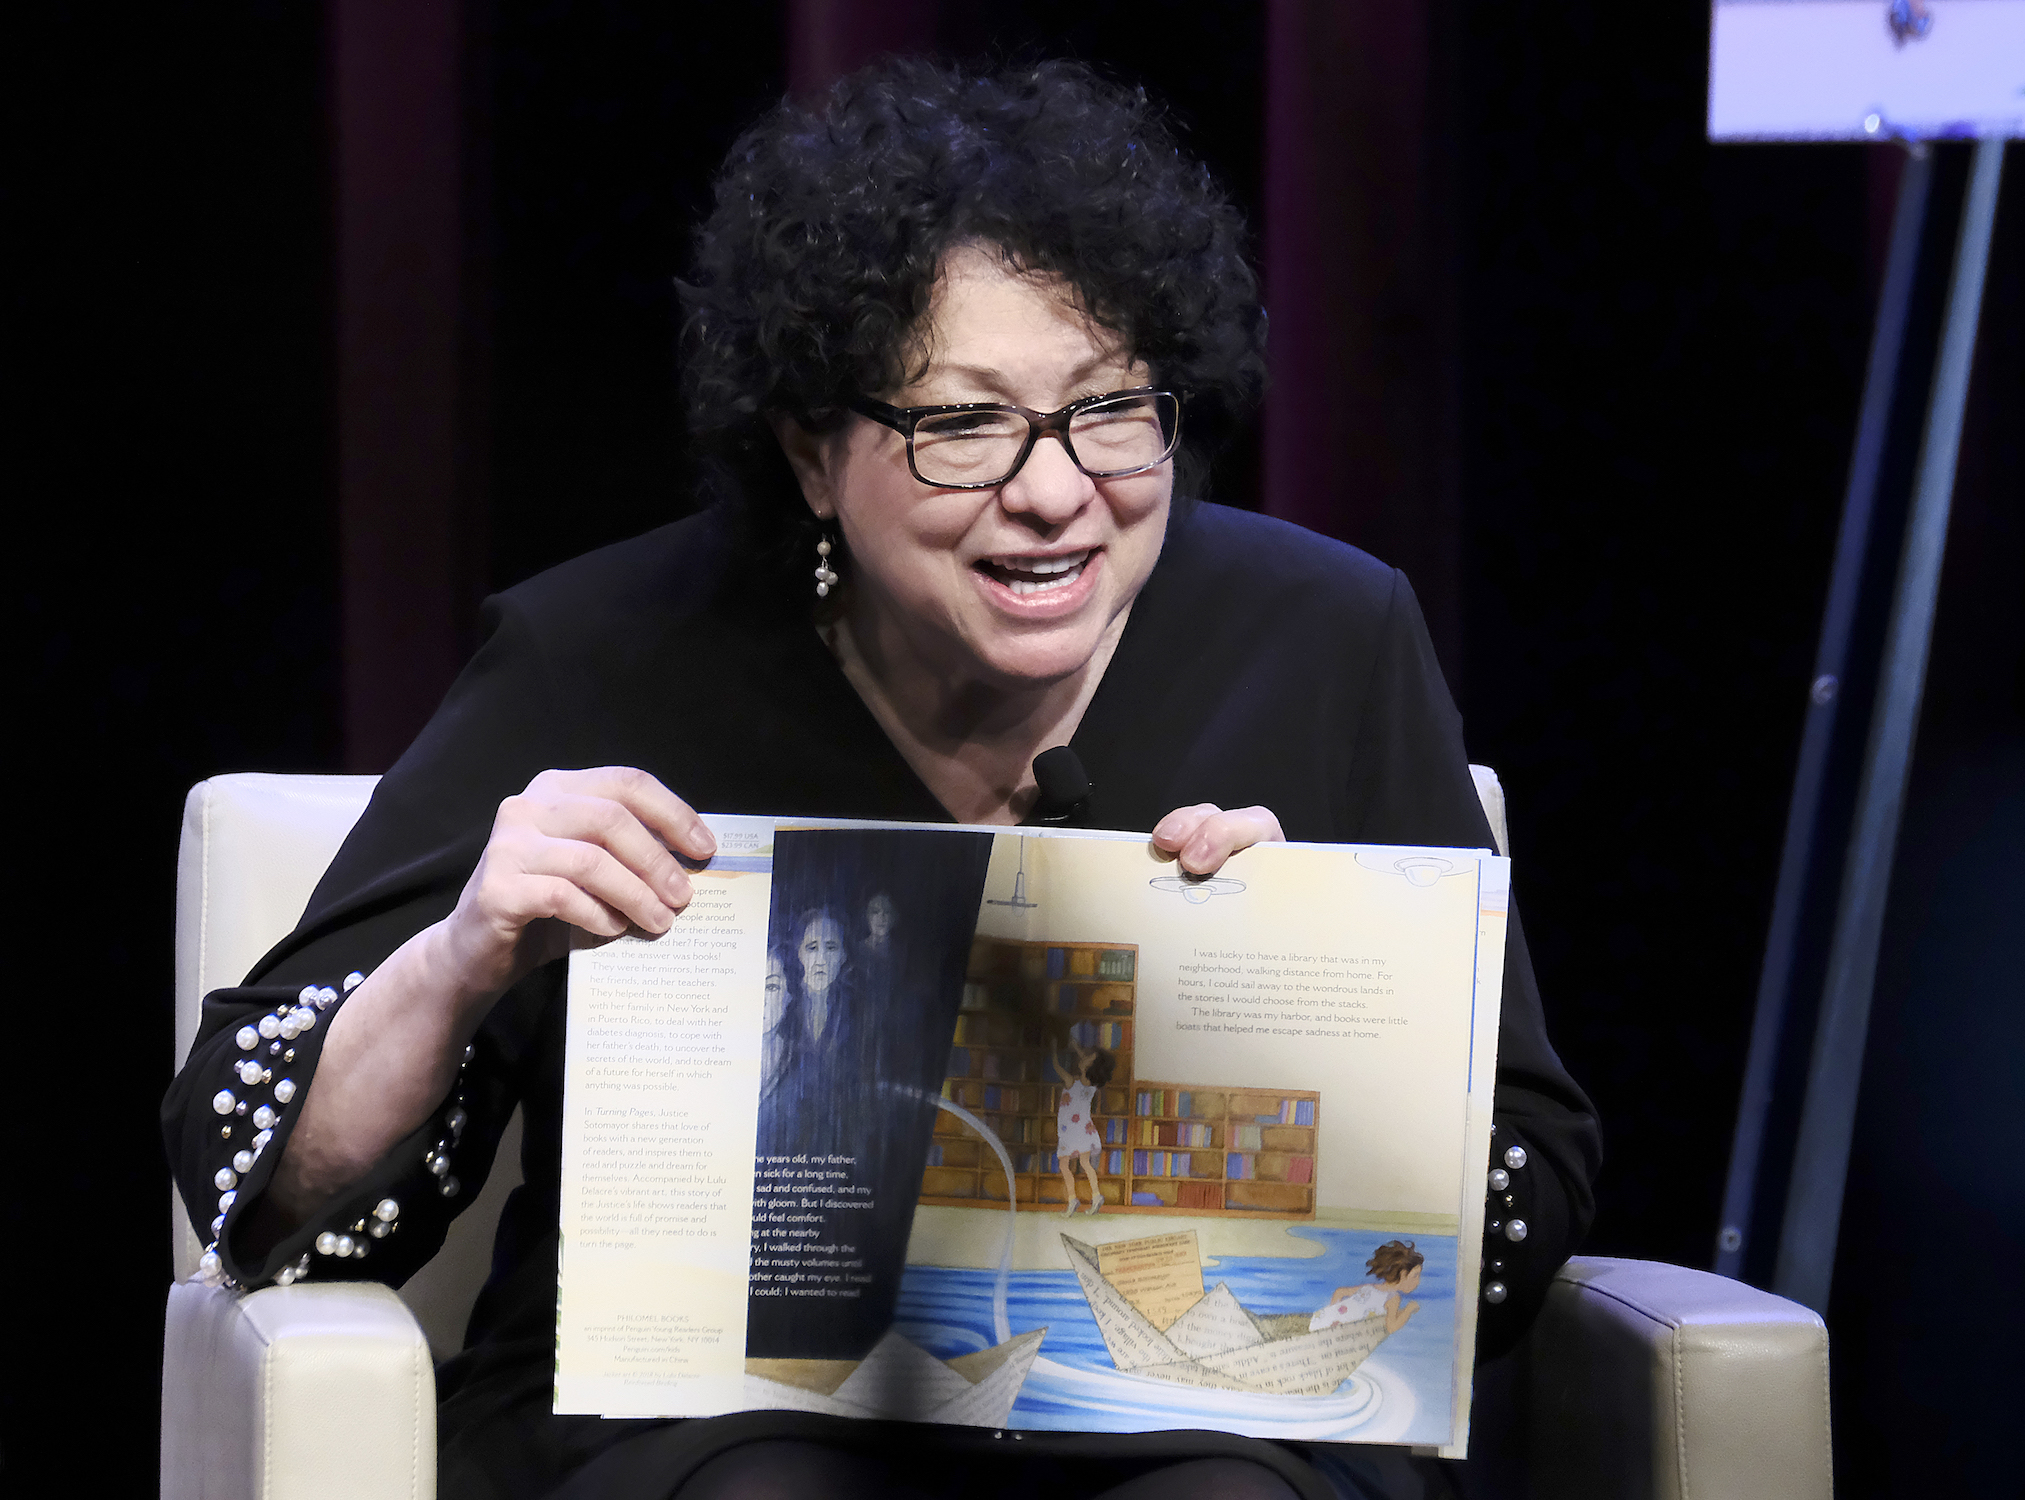 Supreme Court Justice Sonia Sotomayor on Celebrating Our Differences